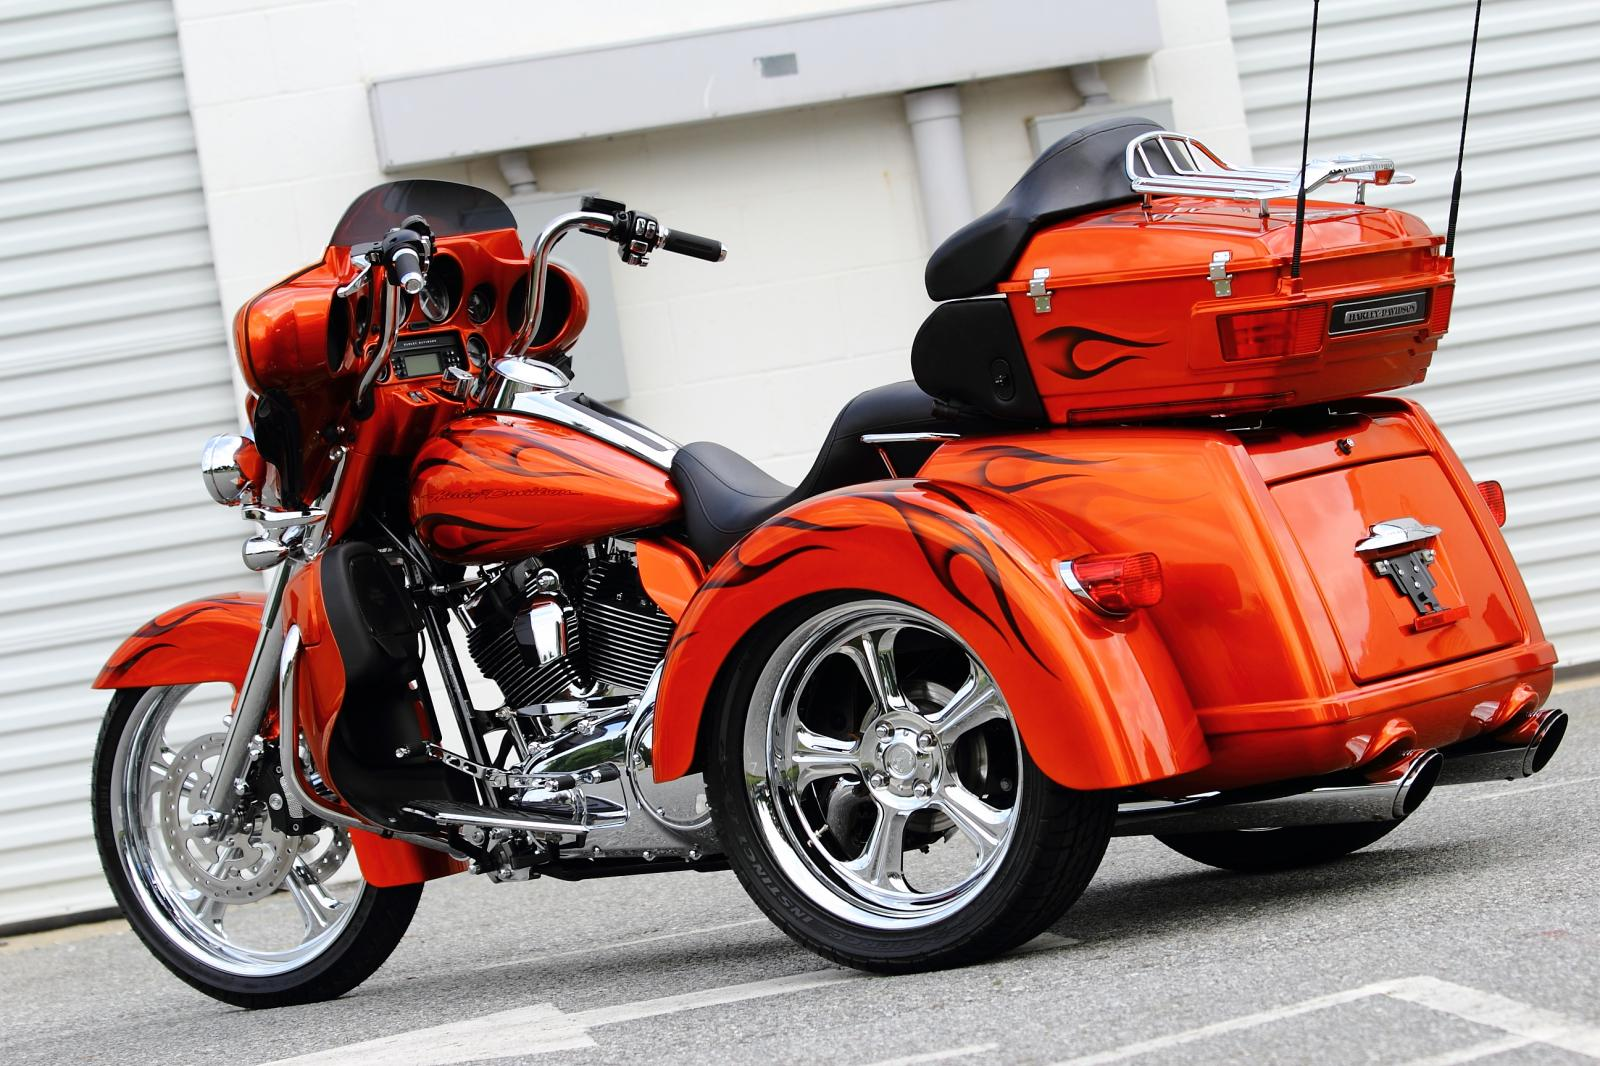 2011 harley davidson flhxxx street glide trike moto. Black Bedroom Furniture Sets. Home Design Ideas